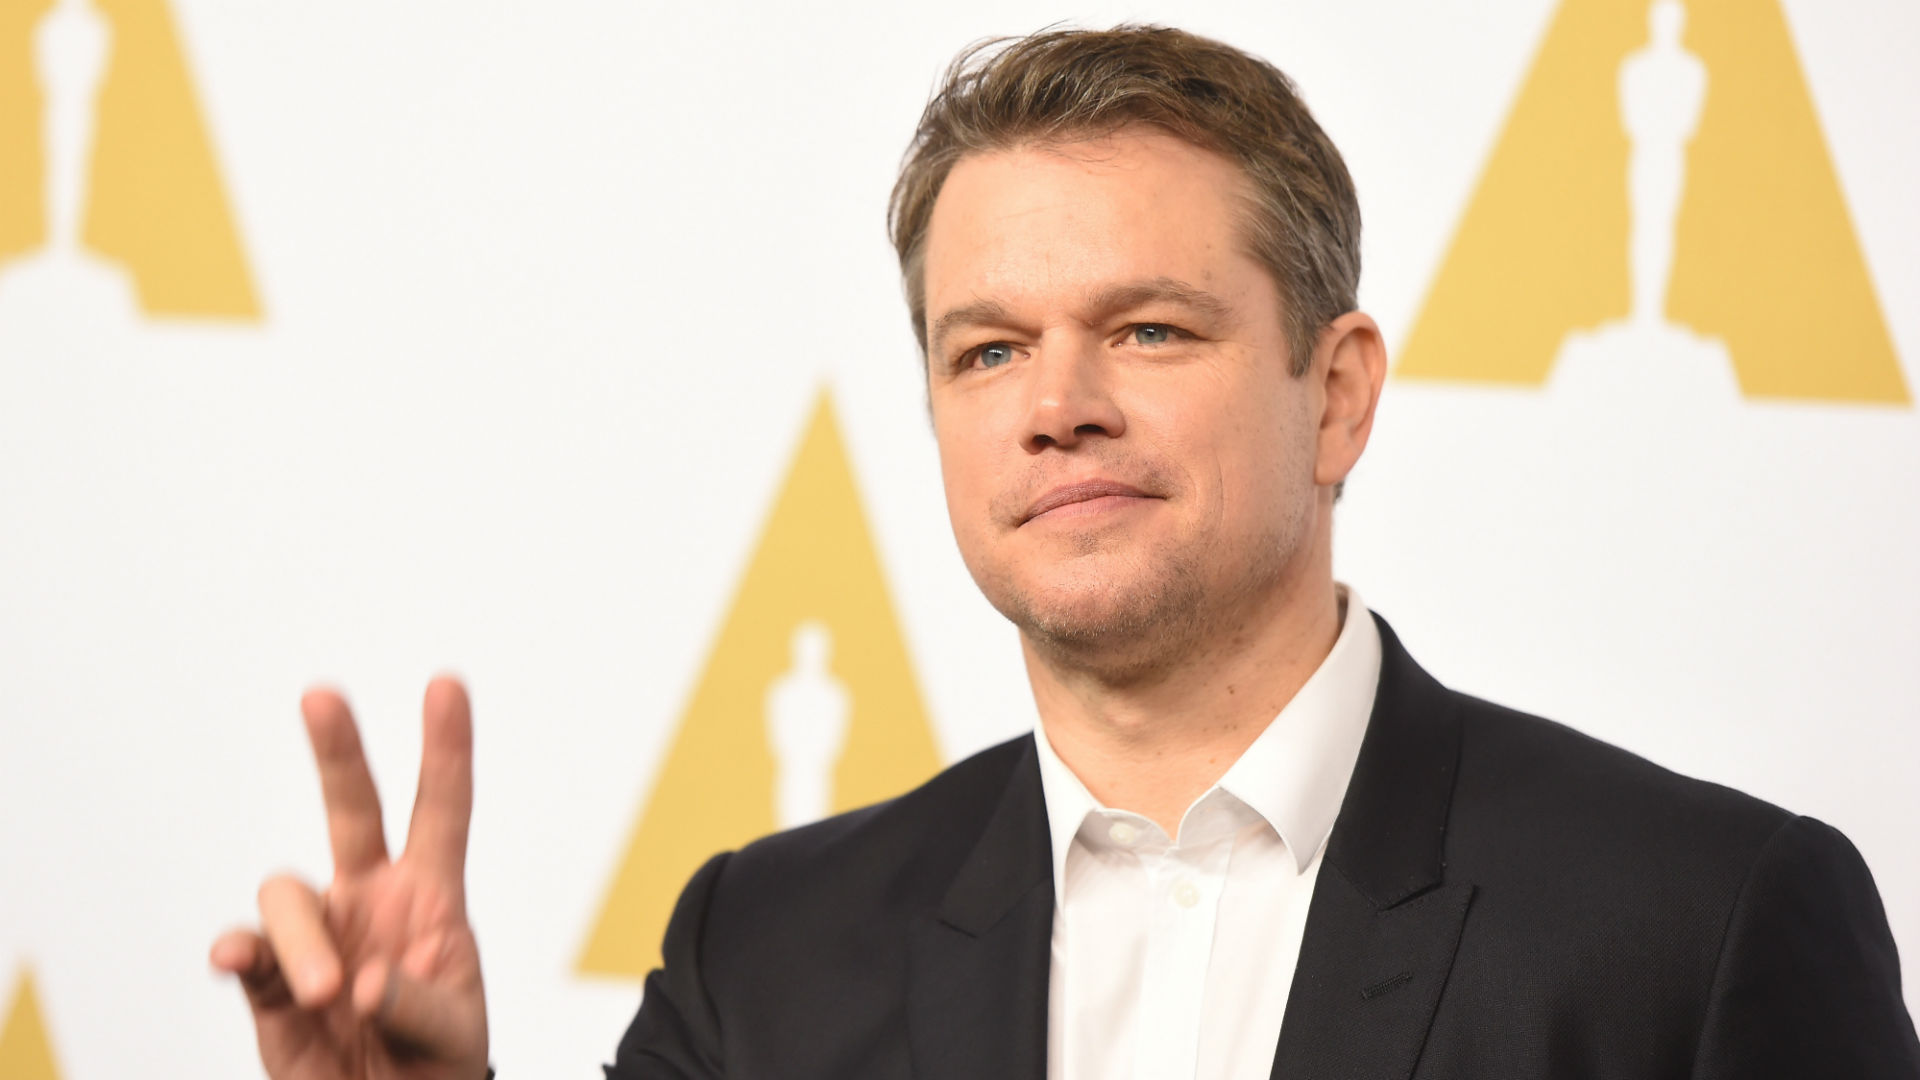 Matt Damon Dresses as Tom Brady and Sneaks Onto 'Jimmy Kimmel Live!'